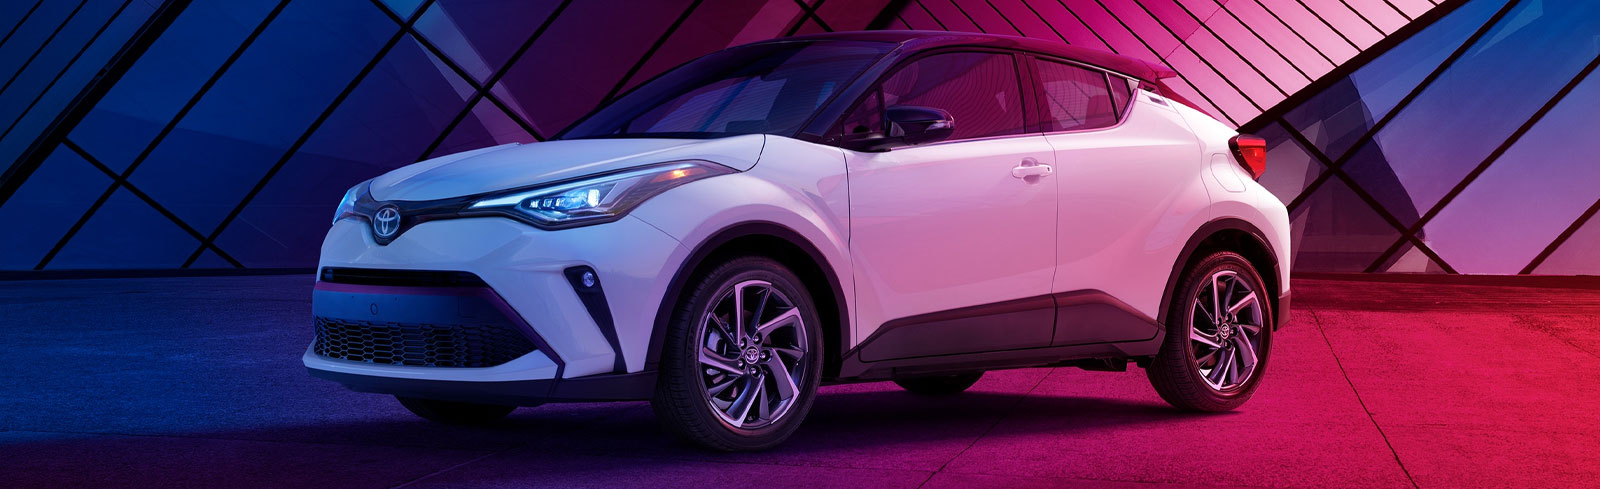 All New 2020 Toyota C-HR for Sale at Future Toyota of Yuba City